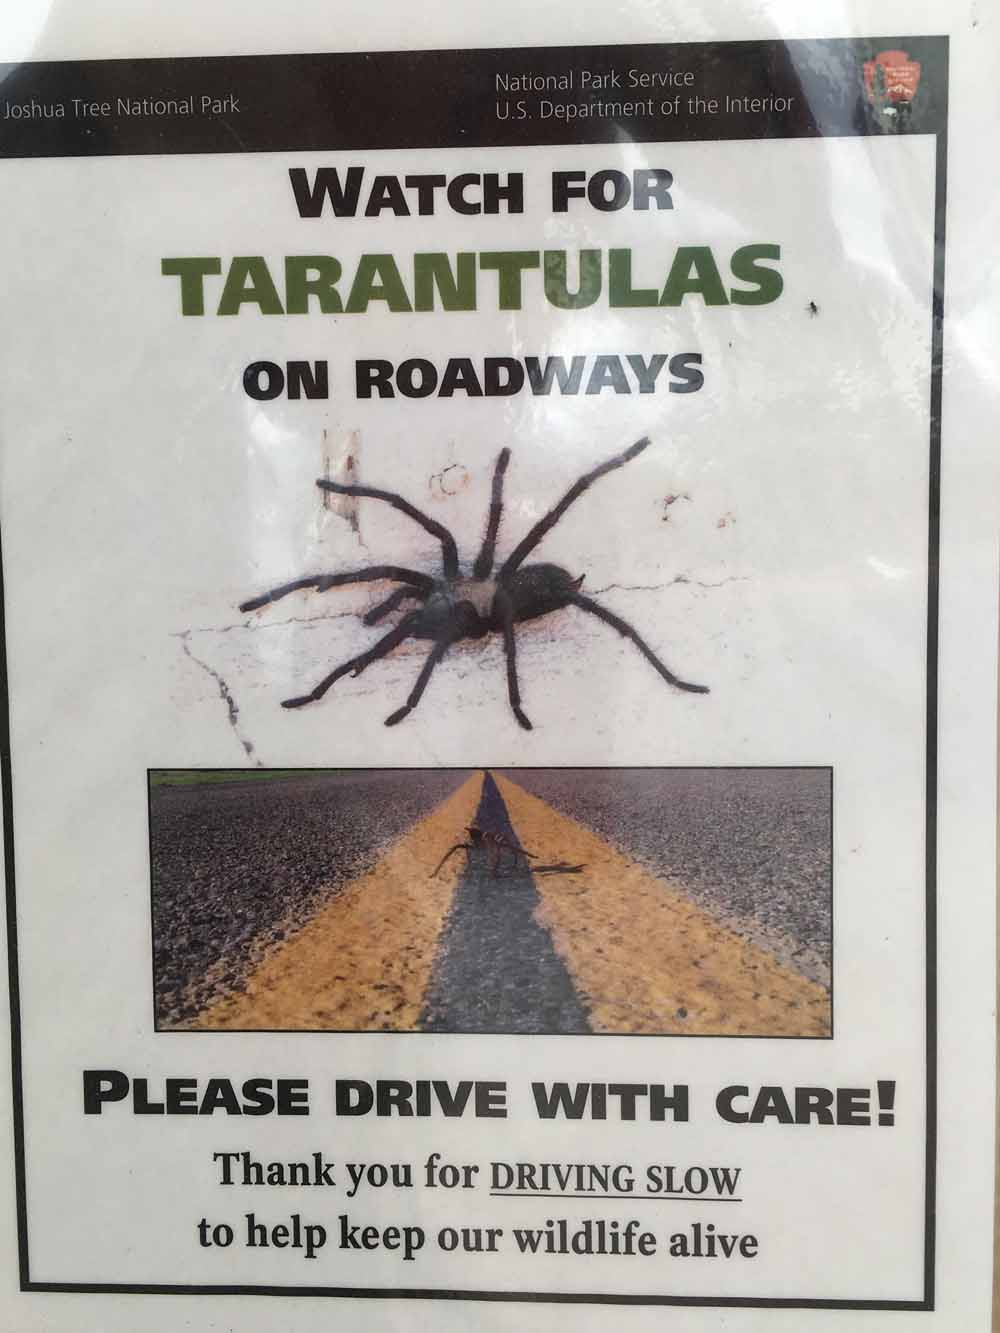 We found this notice scary.  At Kings Canyon and Death Valley  there are a lot of Tarantulas.  You see them on the road all the time.